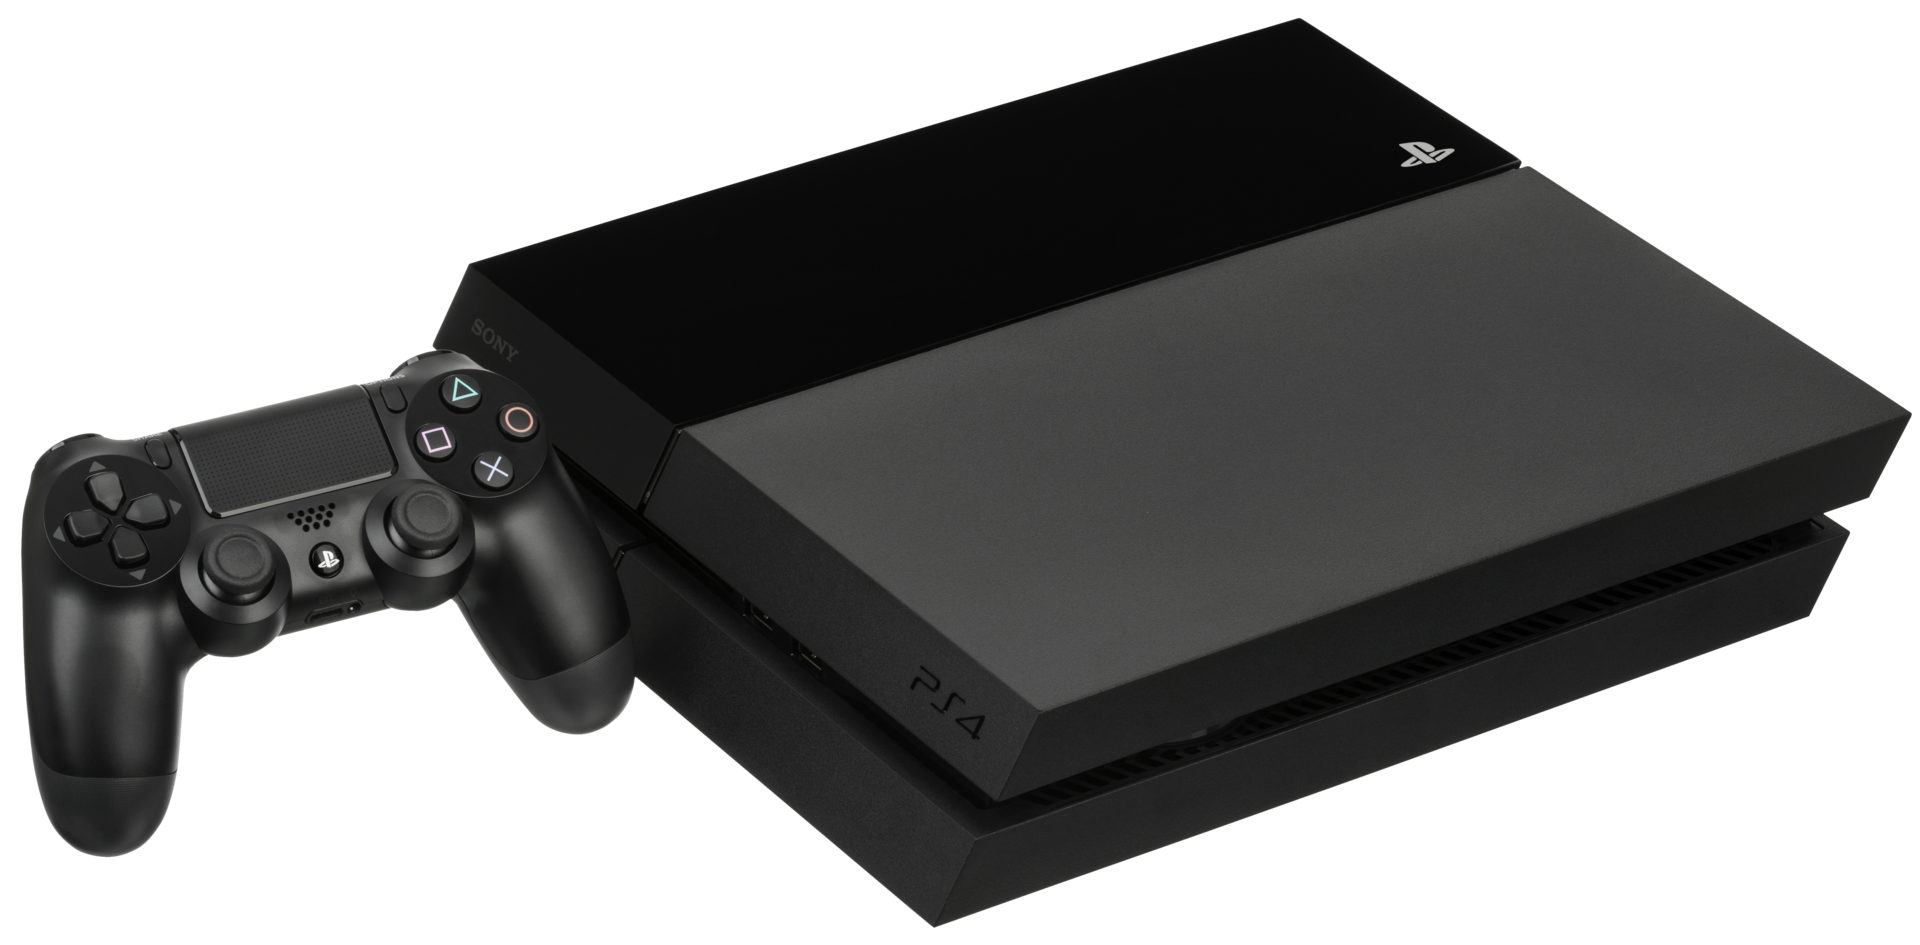 The Five Biggest Selling PS4 Games In Japan